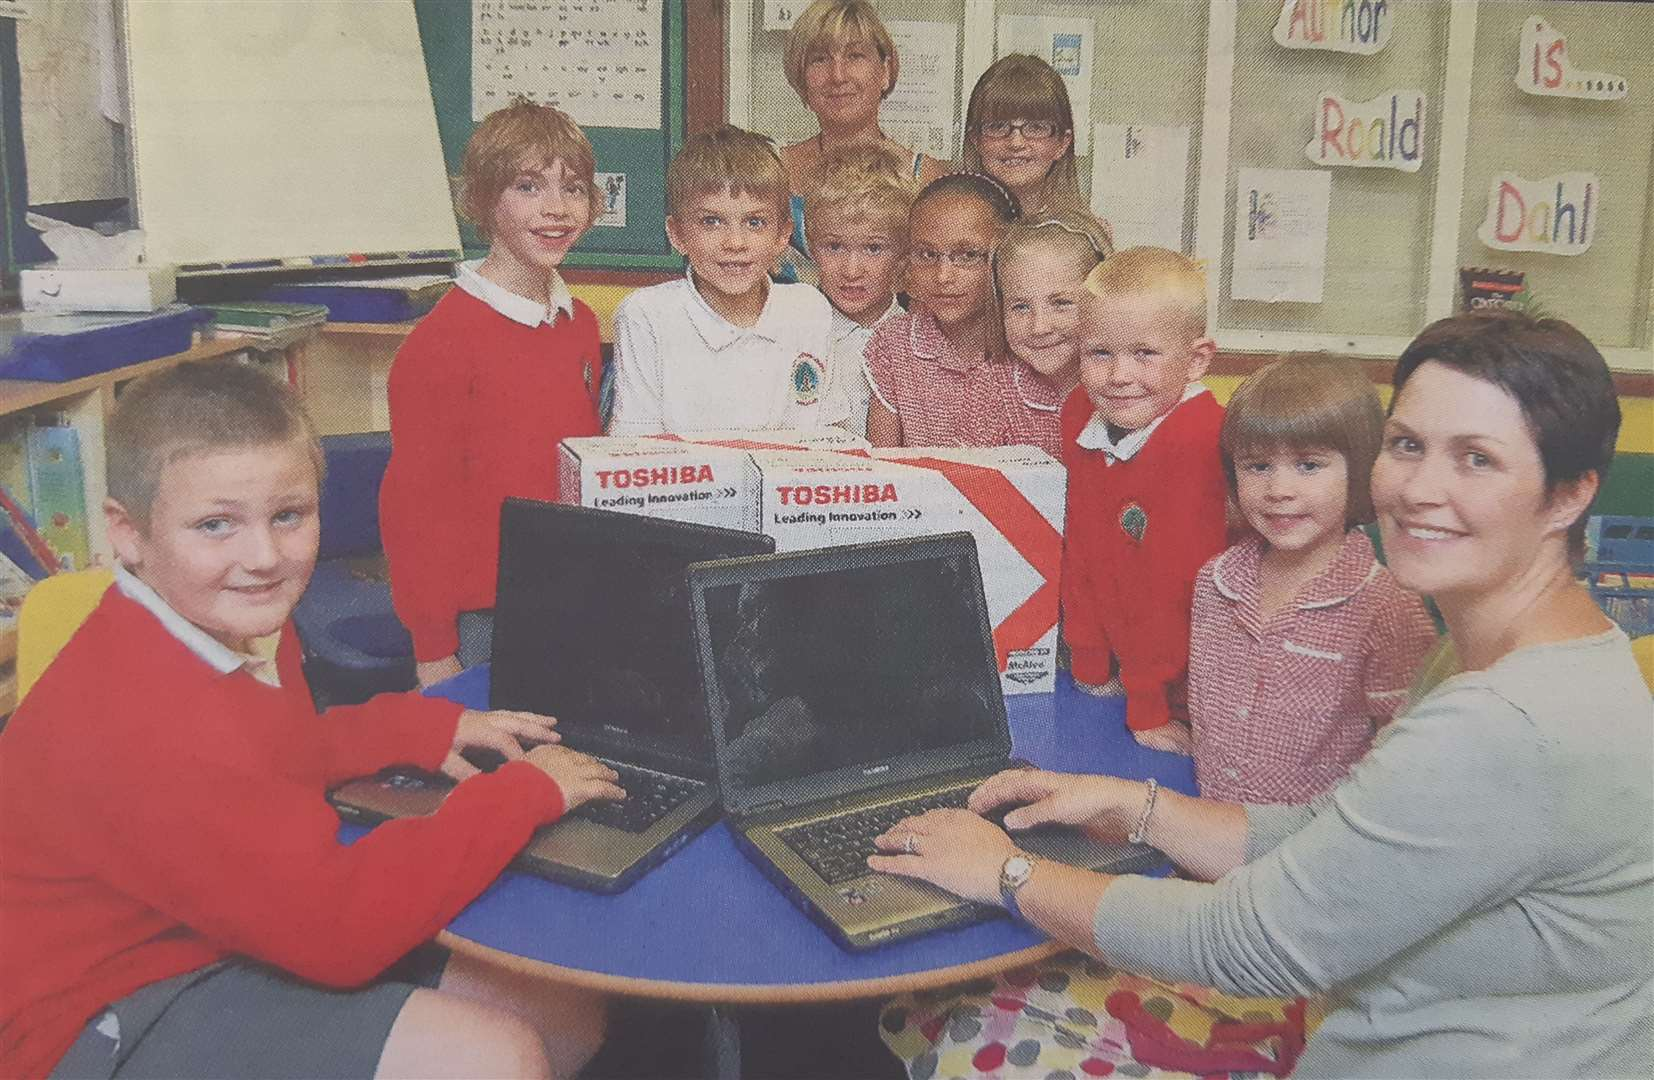 New laptops at Moulton John Harrox Primary School in 2009. (13990703)